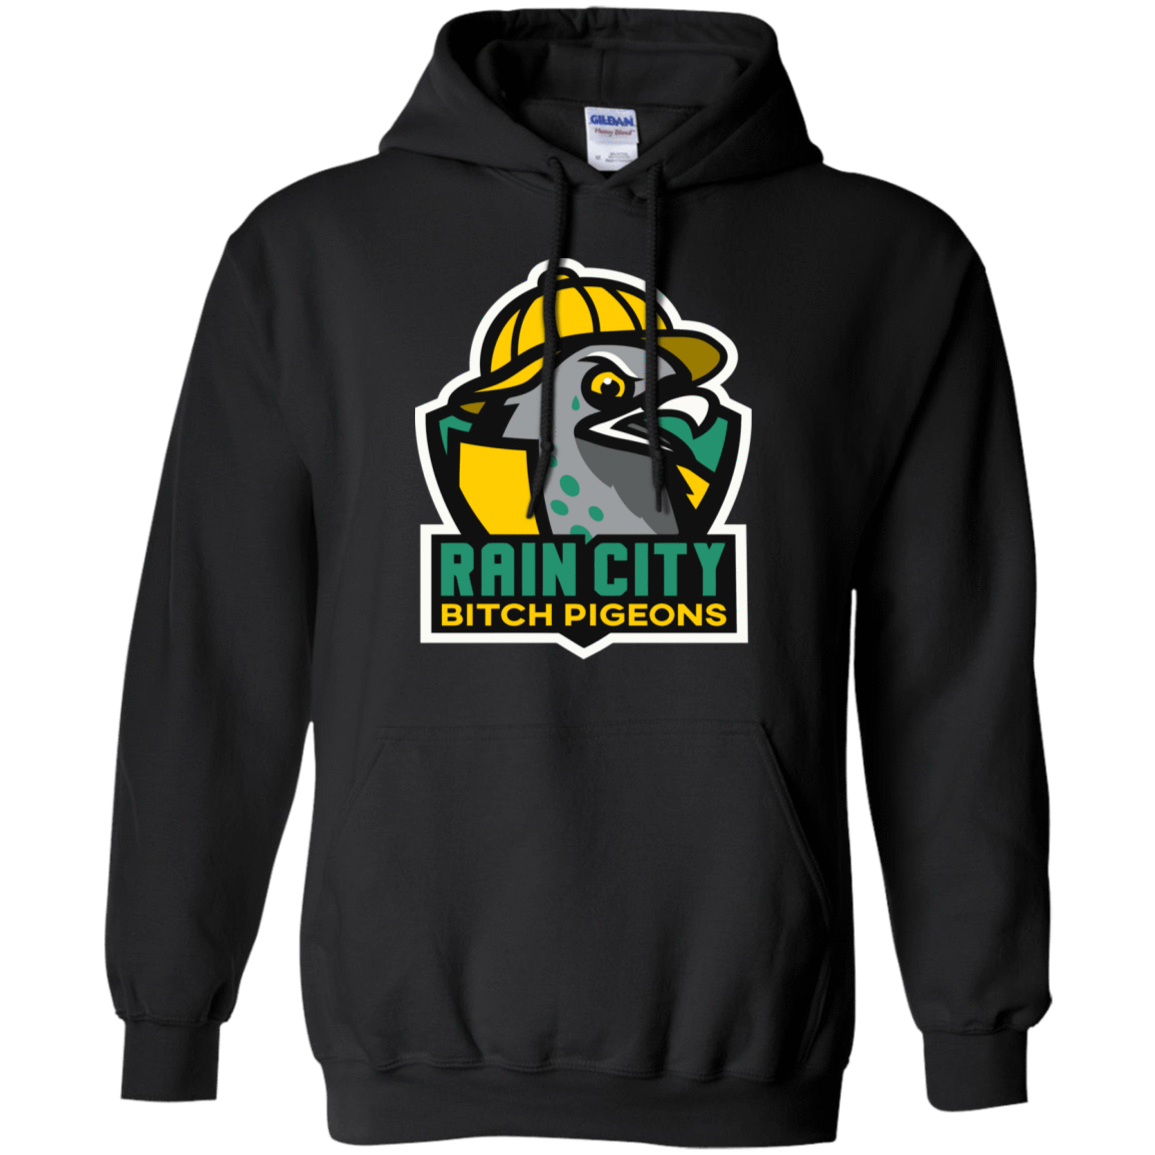 Rain City Bitch Pigeons T-Shirts, Hoodies, Tank 541-4740-79271398-23087 - Tee Ript